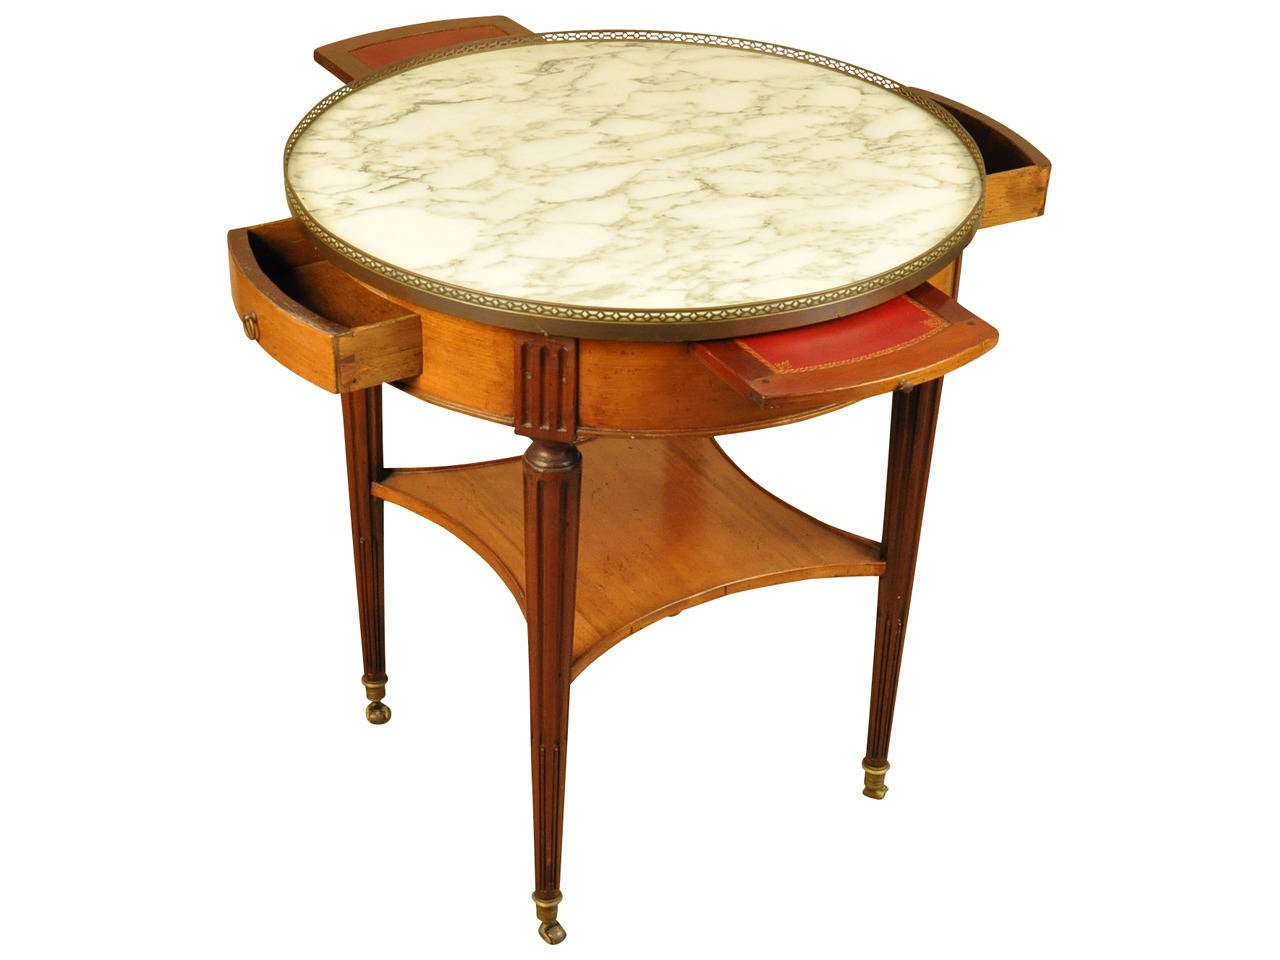 French louis xvi style gueridon or table bouillotte at for Table gueridon